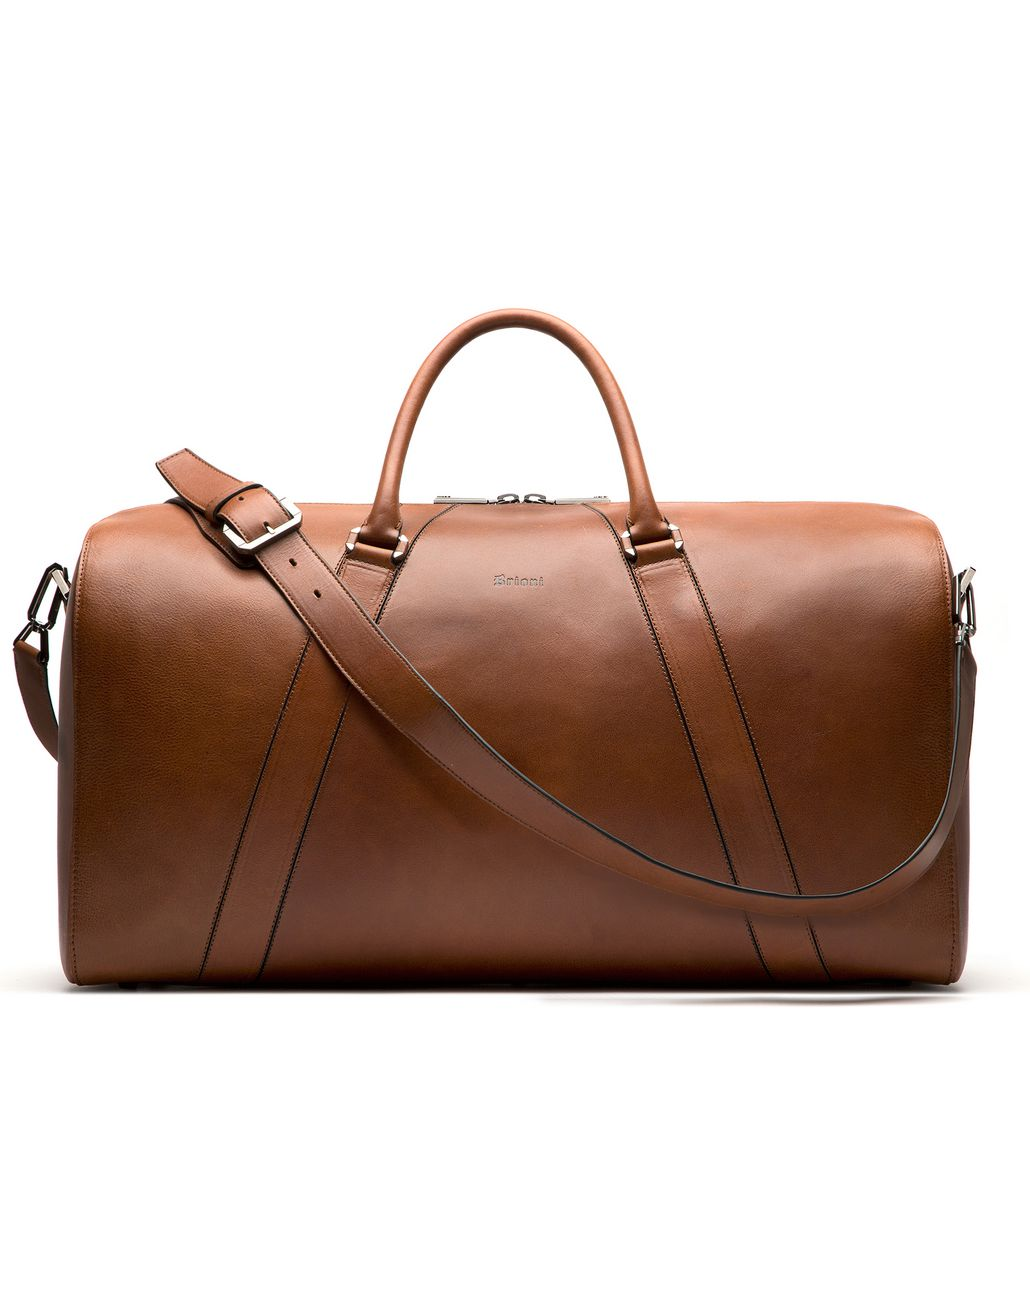 BRIONI Tobacco Brown Travel Bag in Calfskin Bag Man f